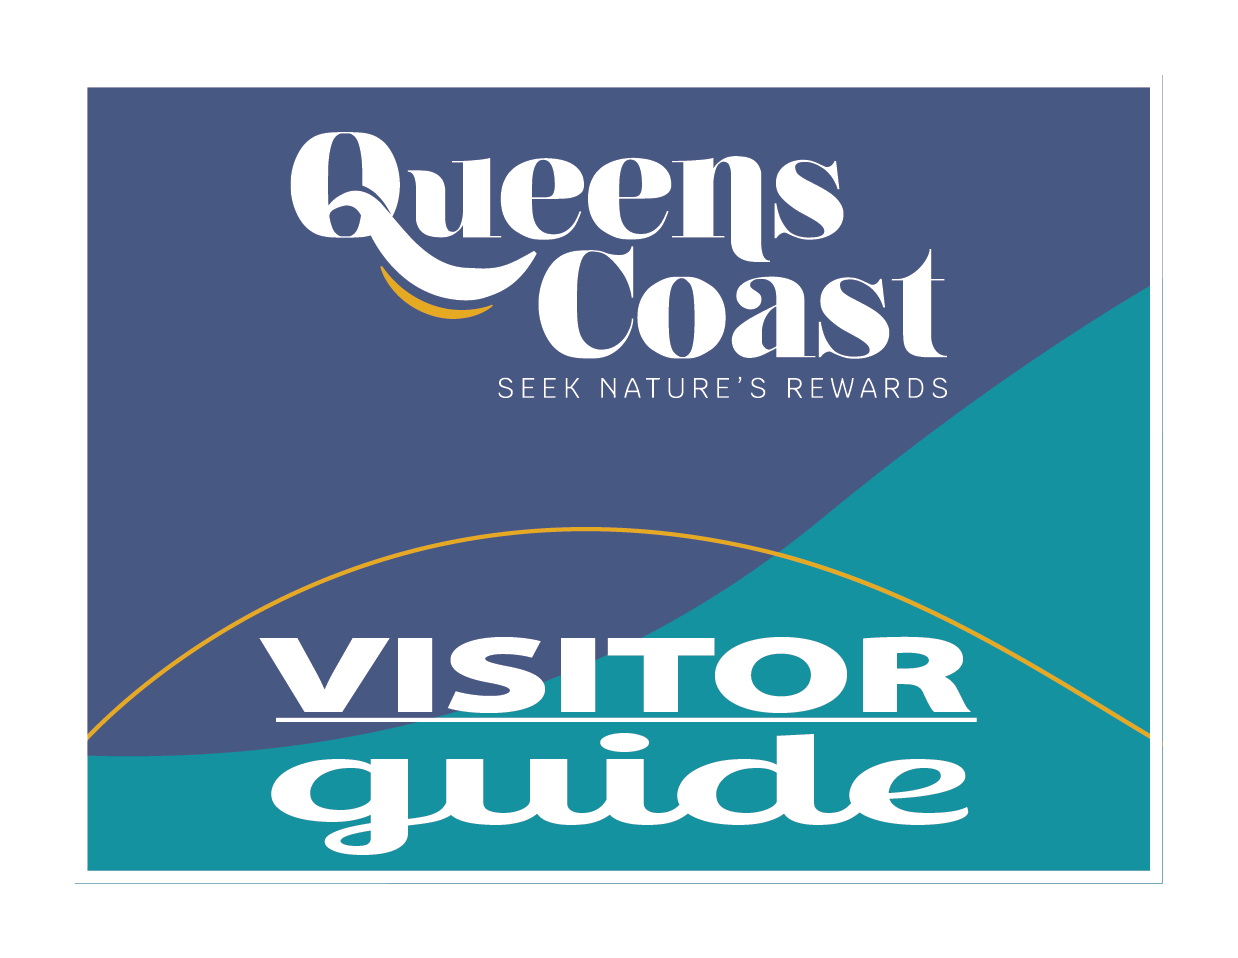 visitors guide thumb